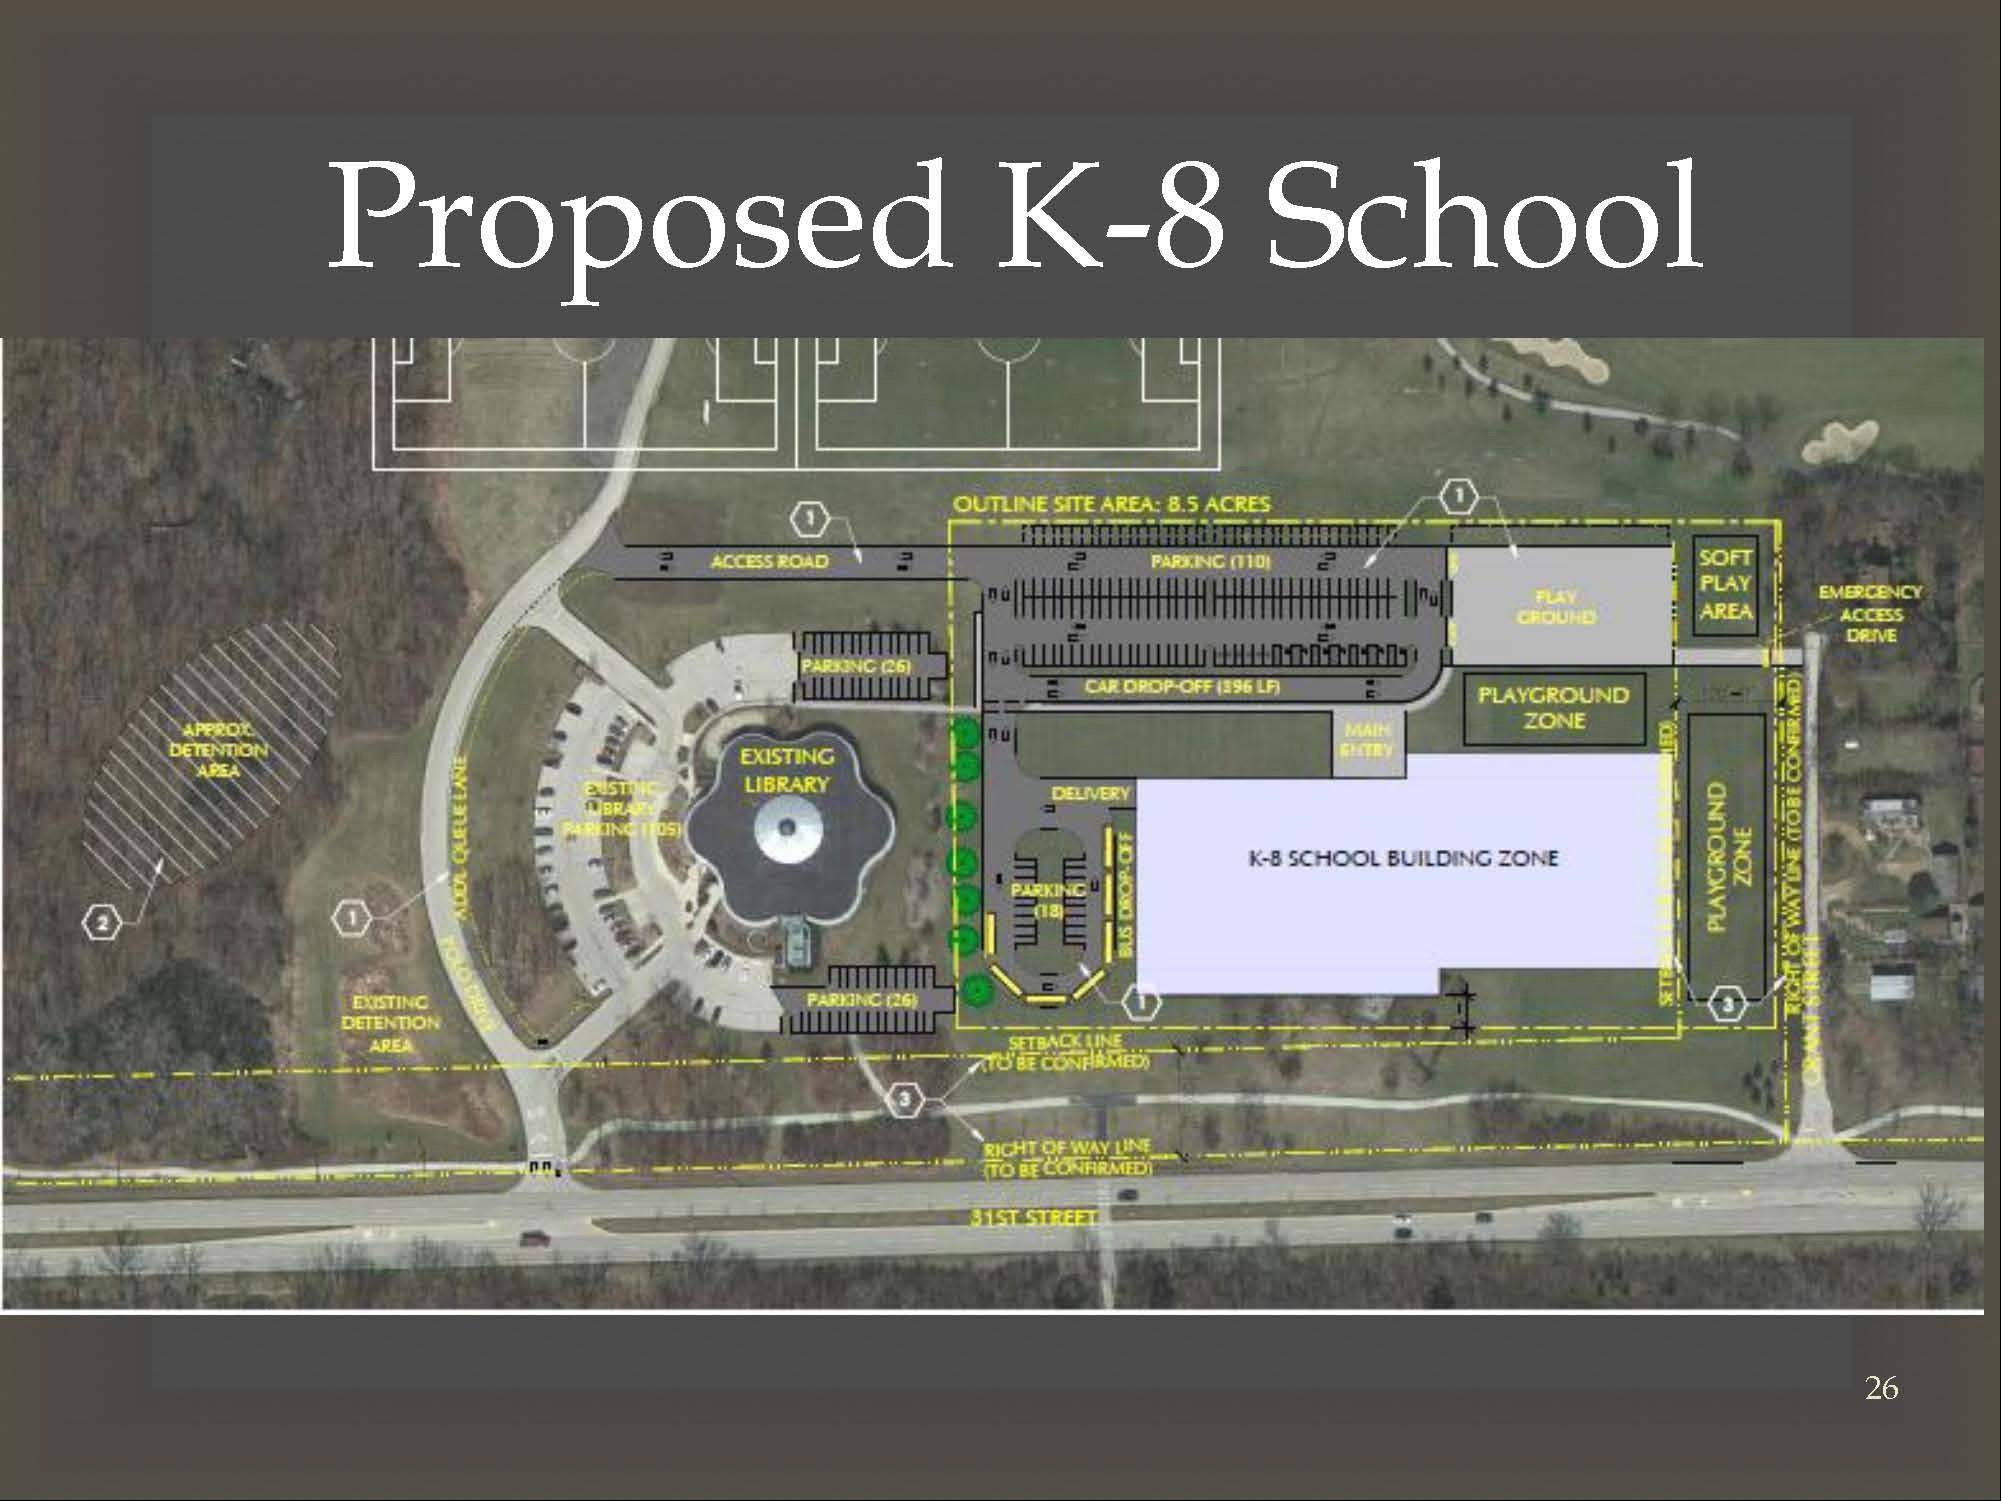 This diagram shows the proposed location of a K-8 school Butler District 53 wants to build on 8.5 acres of Oak Brook Sports Core land east of the Oak Brook Public Library.